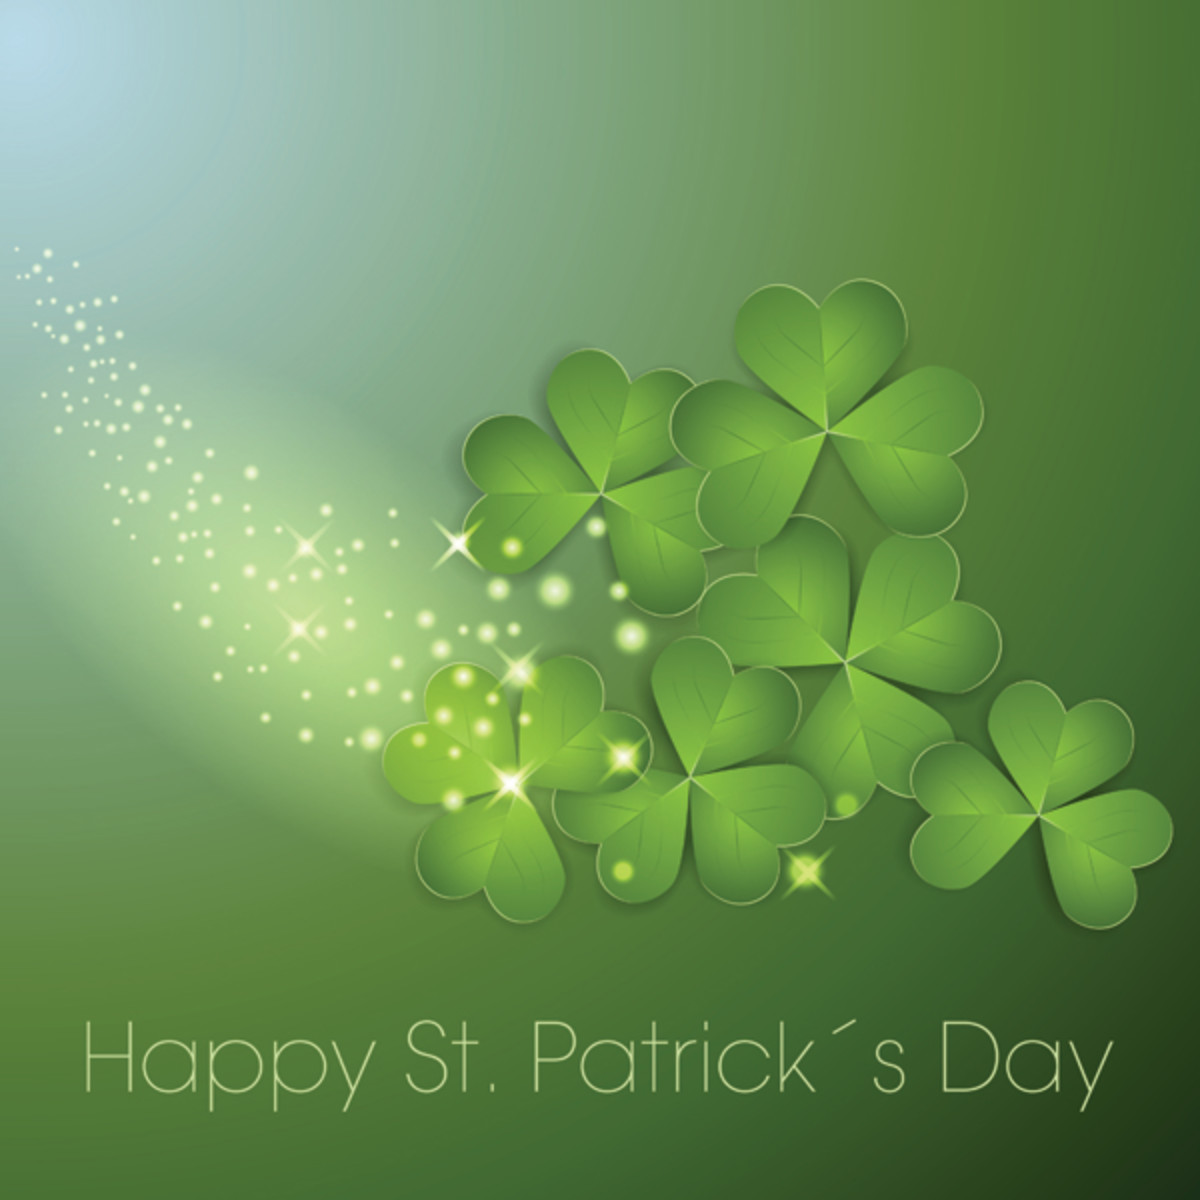 Happy St. Patrick's Day with Sparkling Shamrock Images